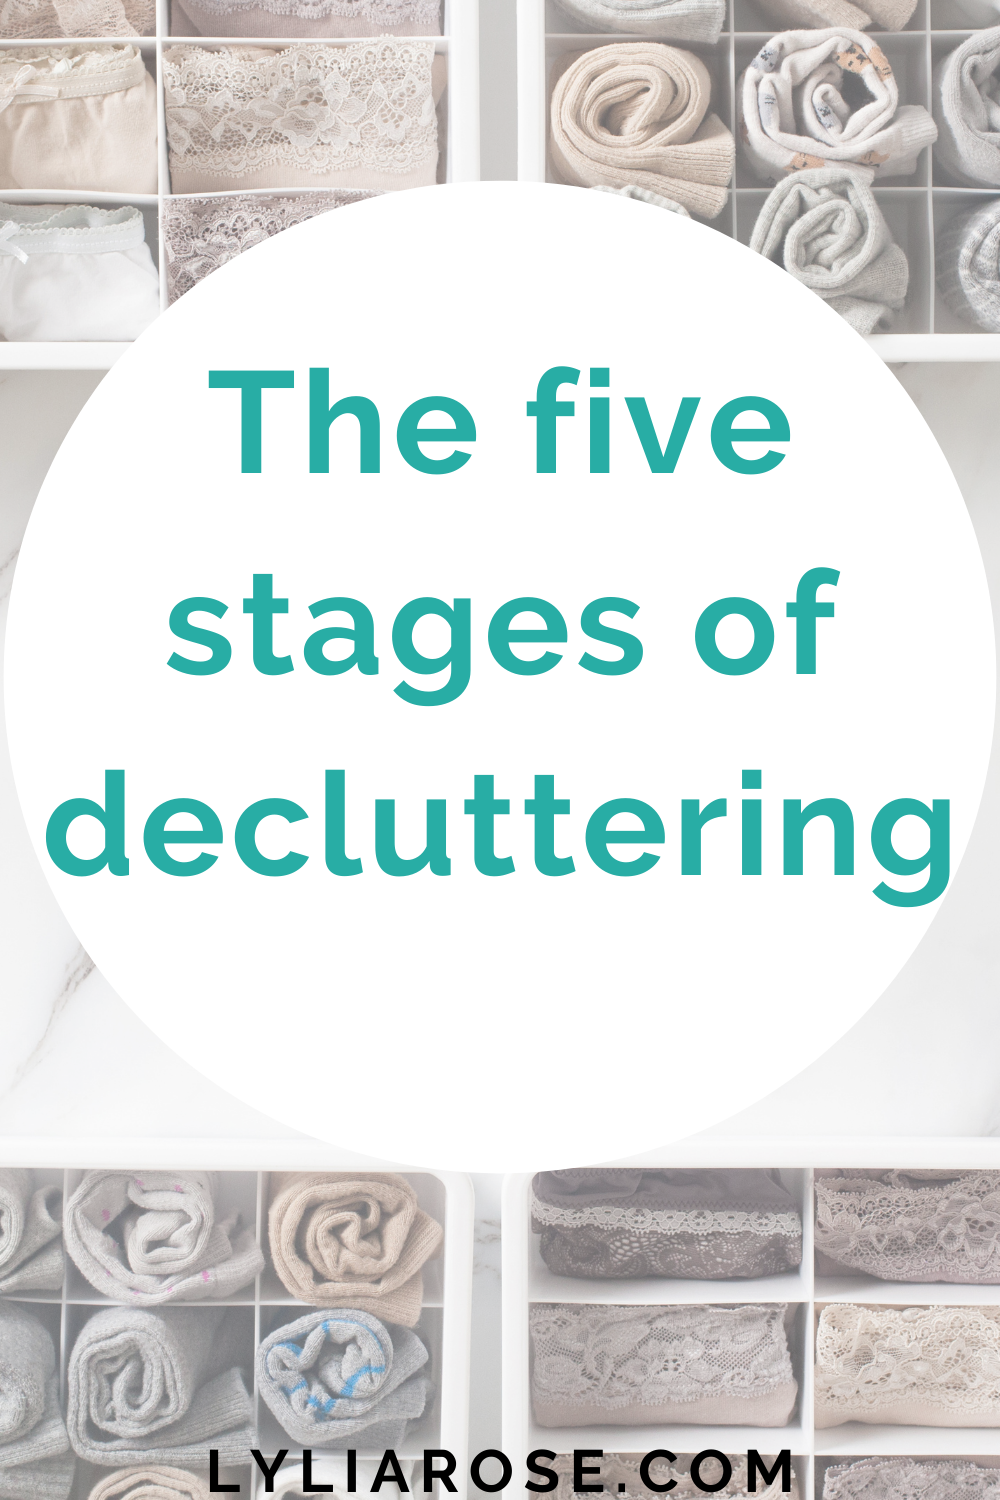 The five stages of decluttering